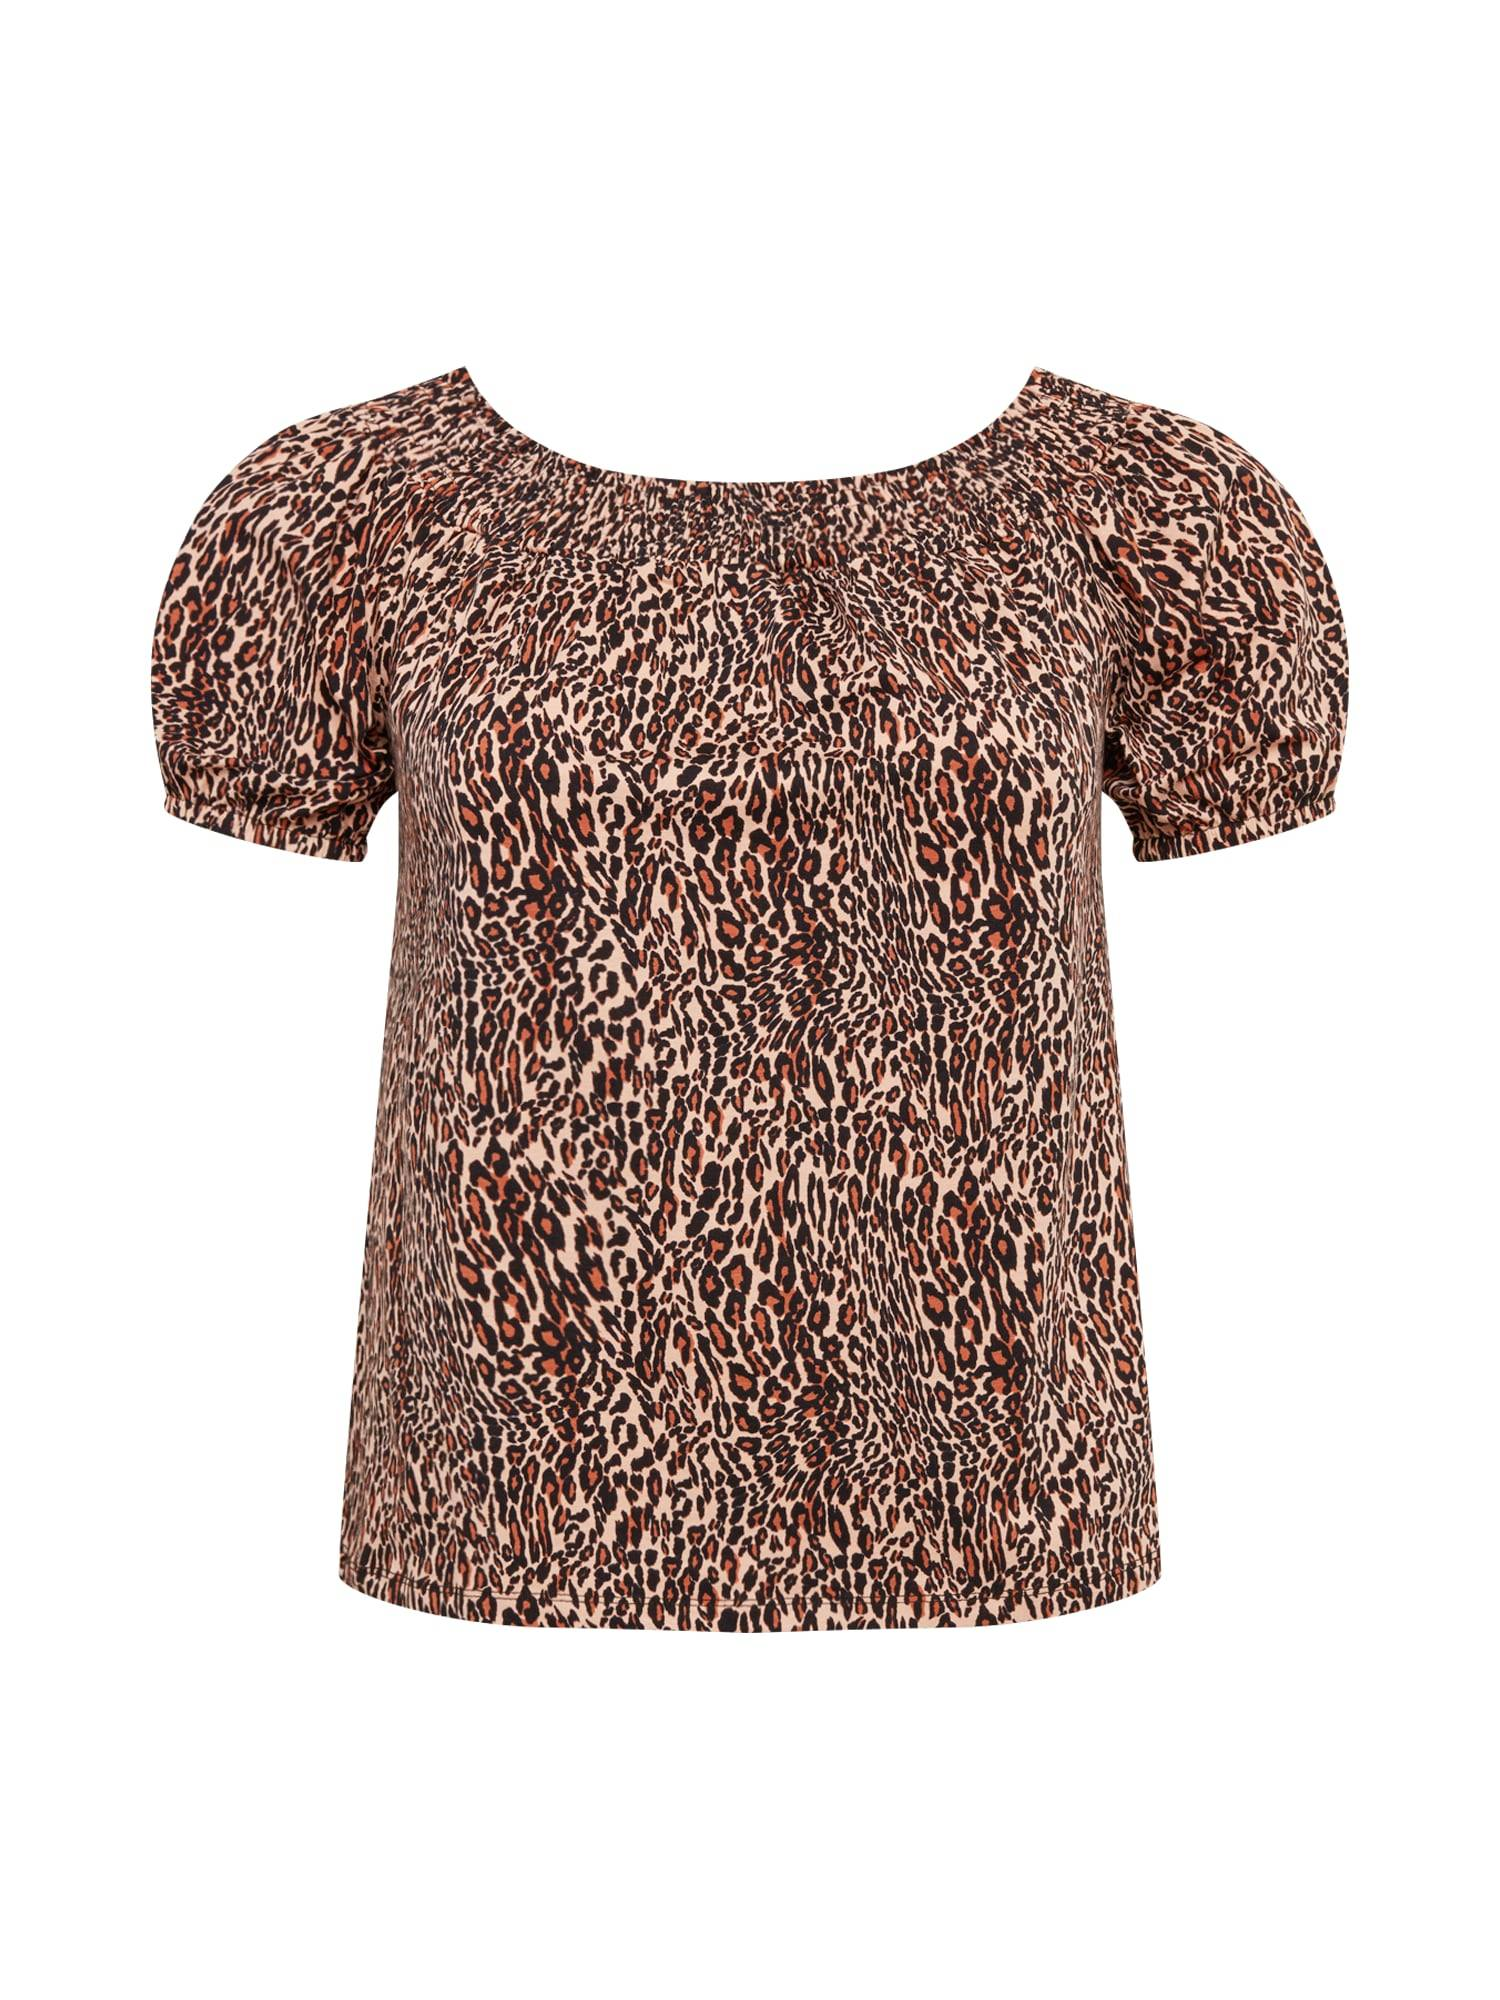 Dorothy Perkins Curve T-shirt  - Marron - Taille: 24 - female